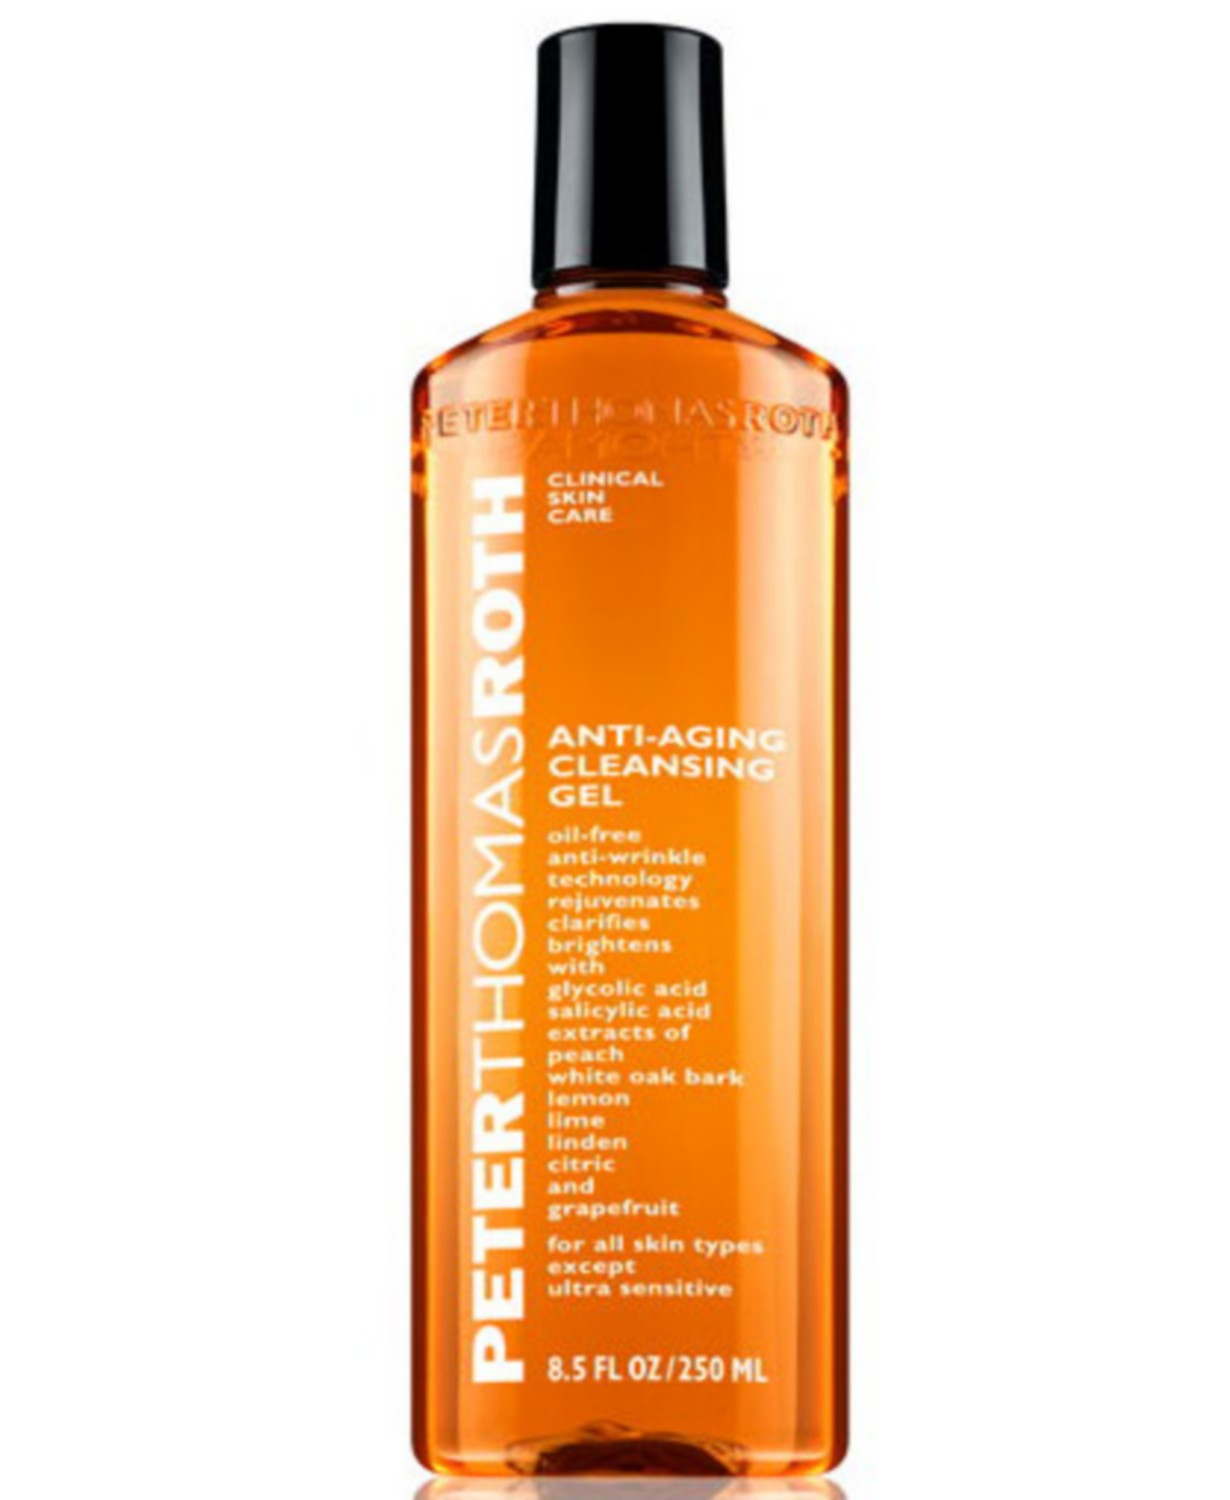 Macy's Beauty 10 Days of Glam Sale: 8.5oz Peter Thomas Roth Cleansing Gel